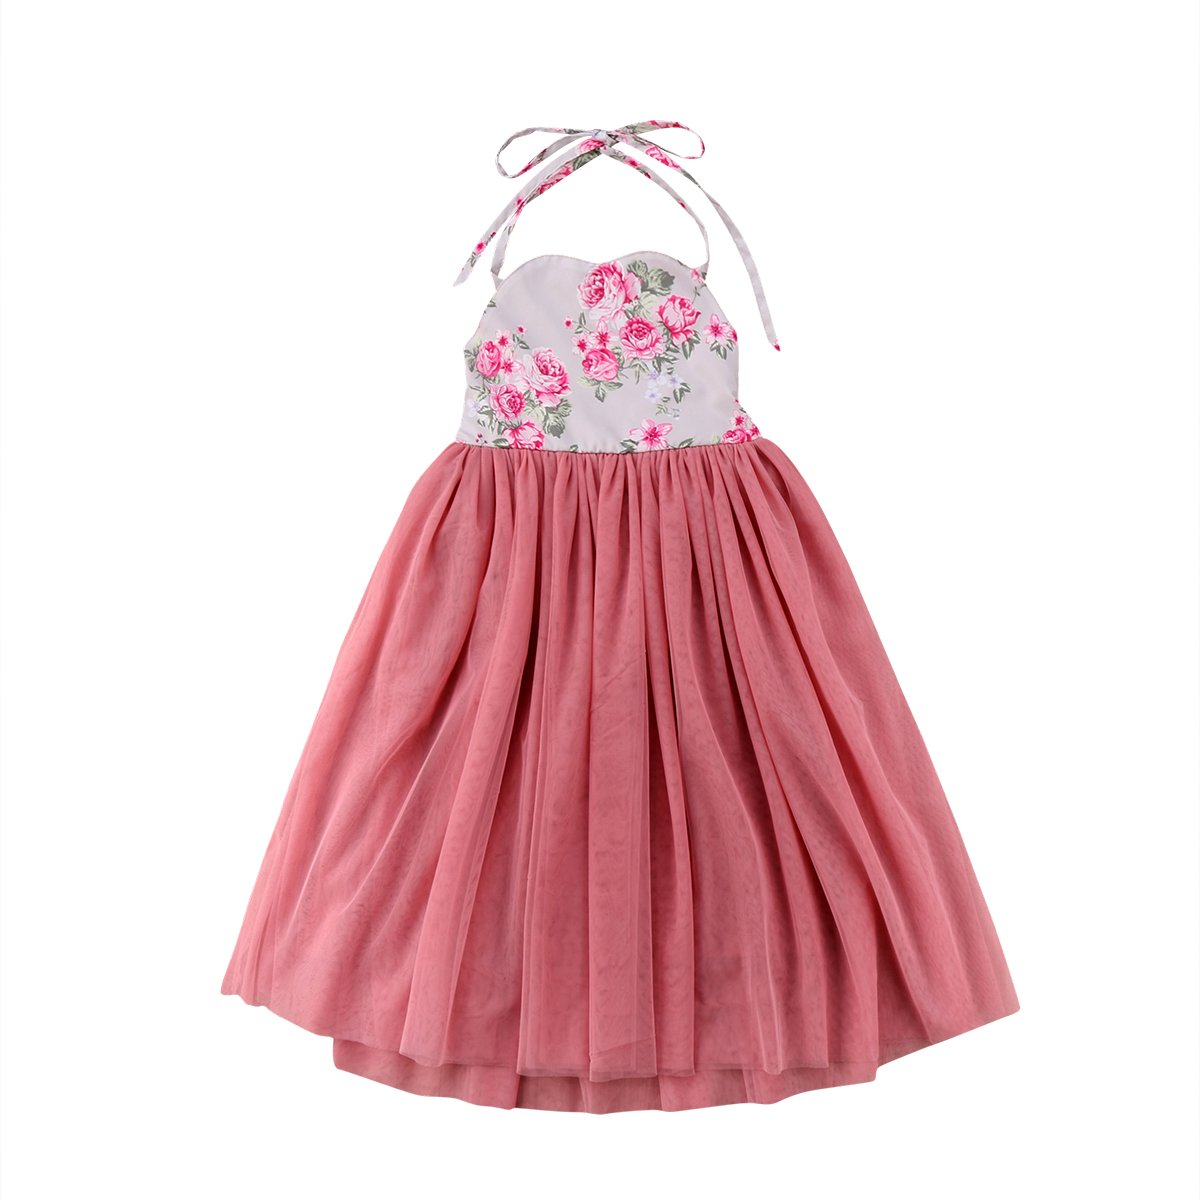 Imcute 2018 Baby Girls Halter Floral Pink Princess Long Summer Dress for Party Birthday Beach (5-6 Years, Pink)